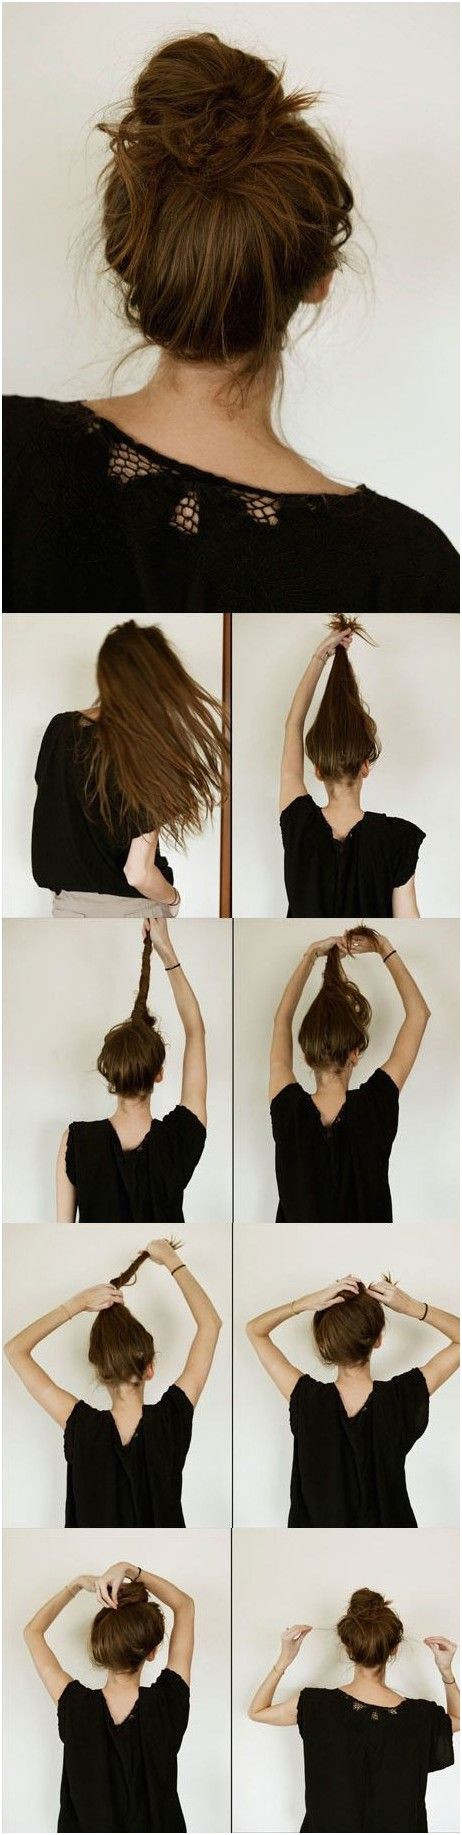 Long hairstyles look charming and Besides it is versatile when it es to styling It can be styled into a simple high ponytail or cute bow